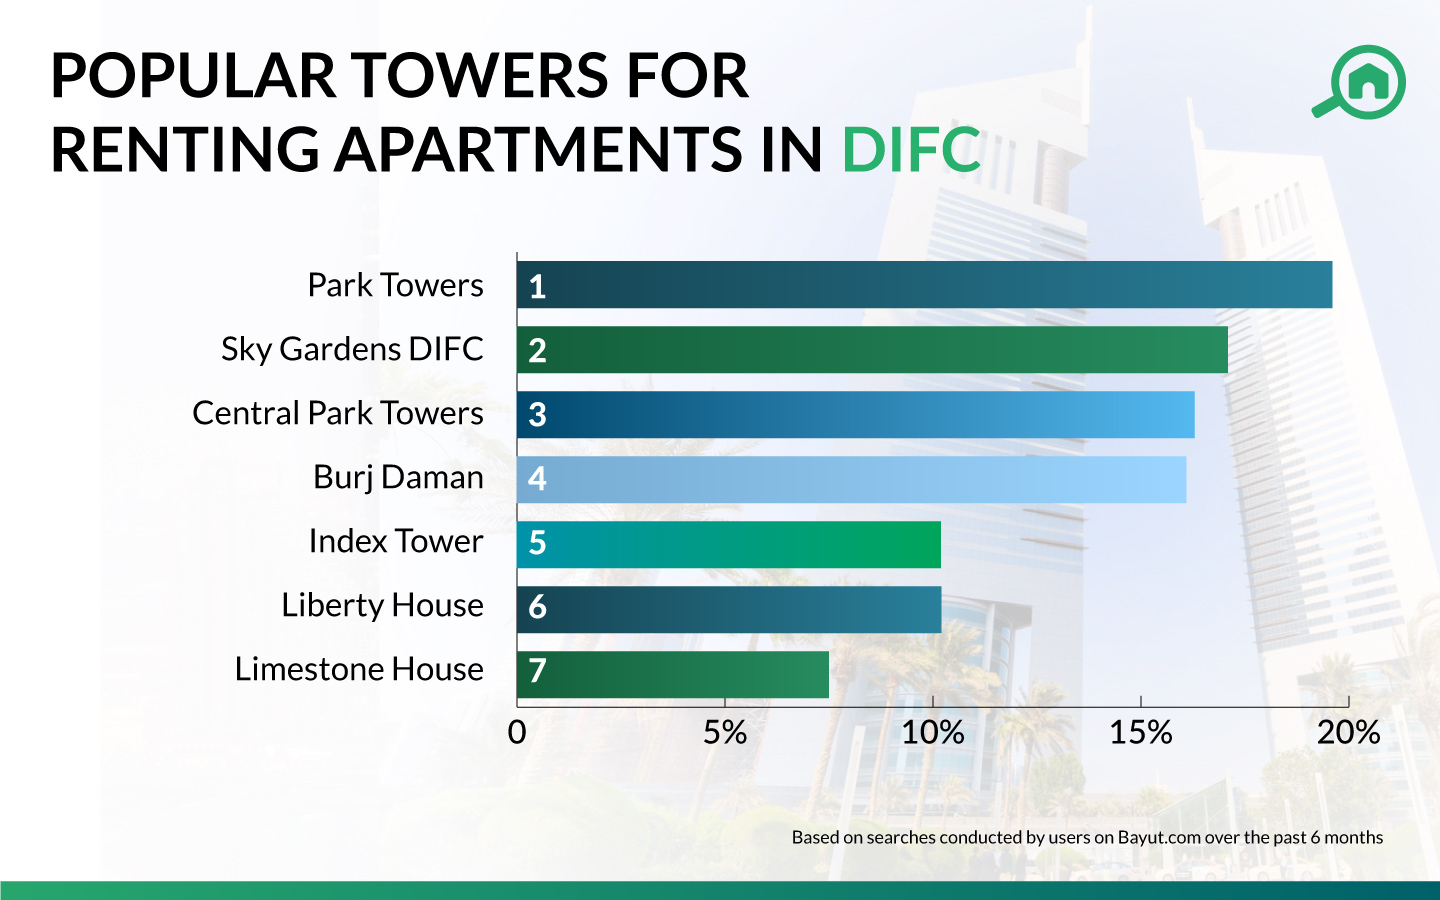 rent trends in DIFC apartments